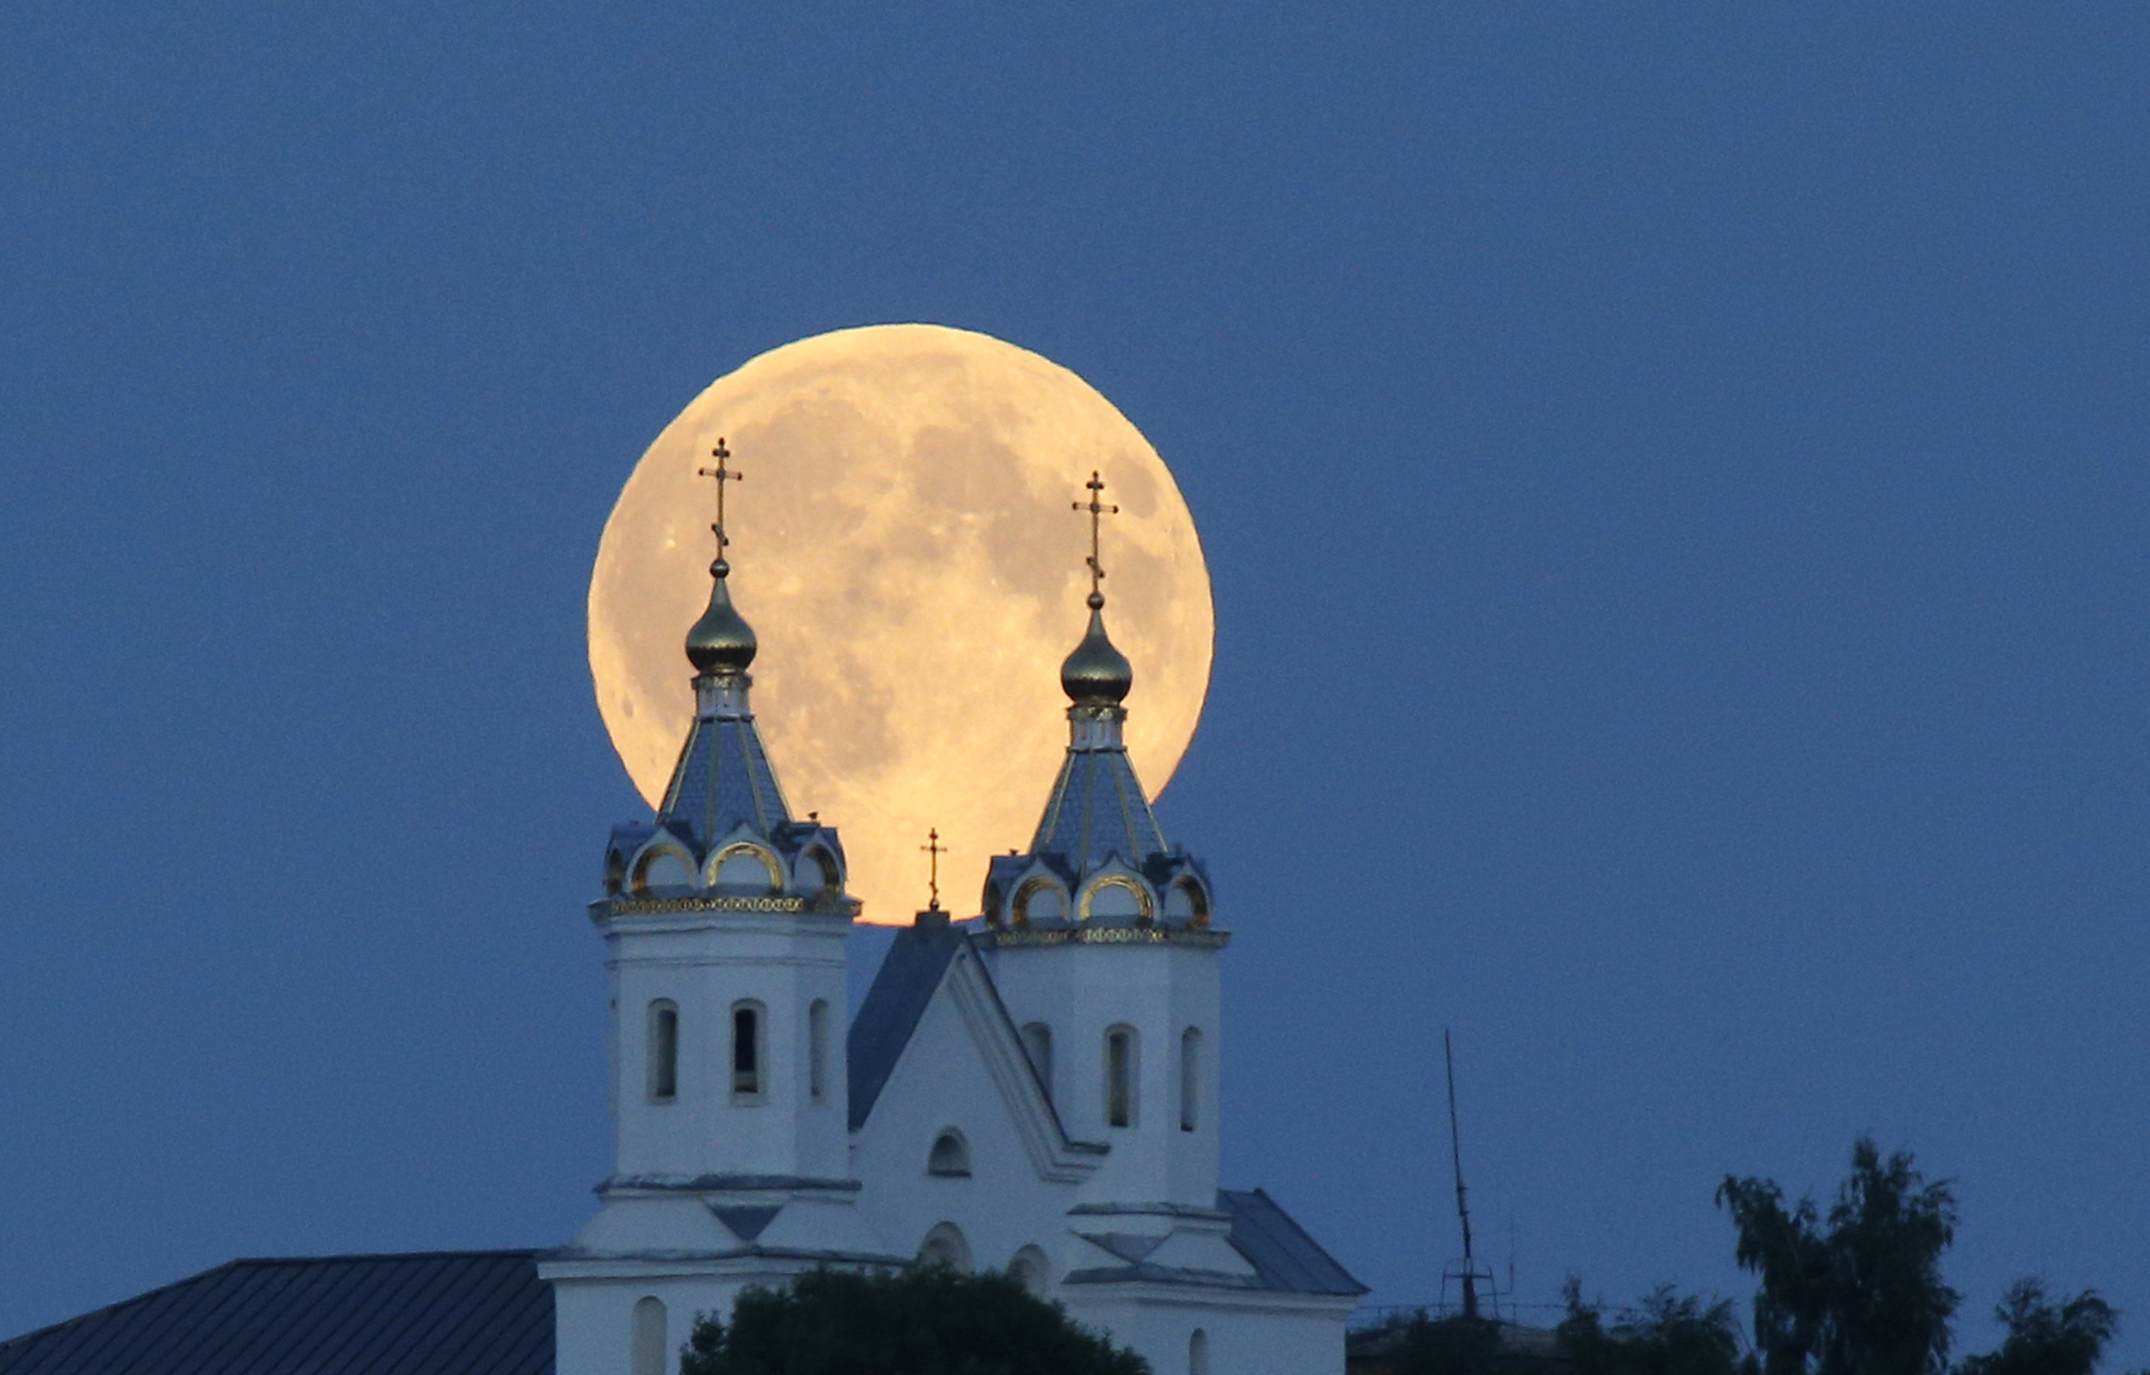 A perigee moon, also known as a super moon, rises above the Orthodox Church in the town of Novogrudok, Belarus on Aug. 29, 2015.